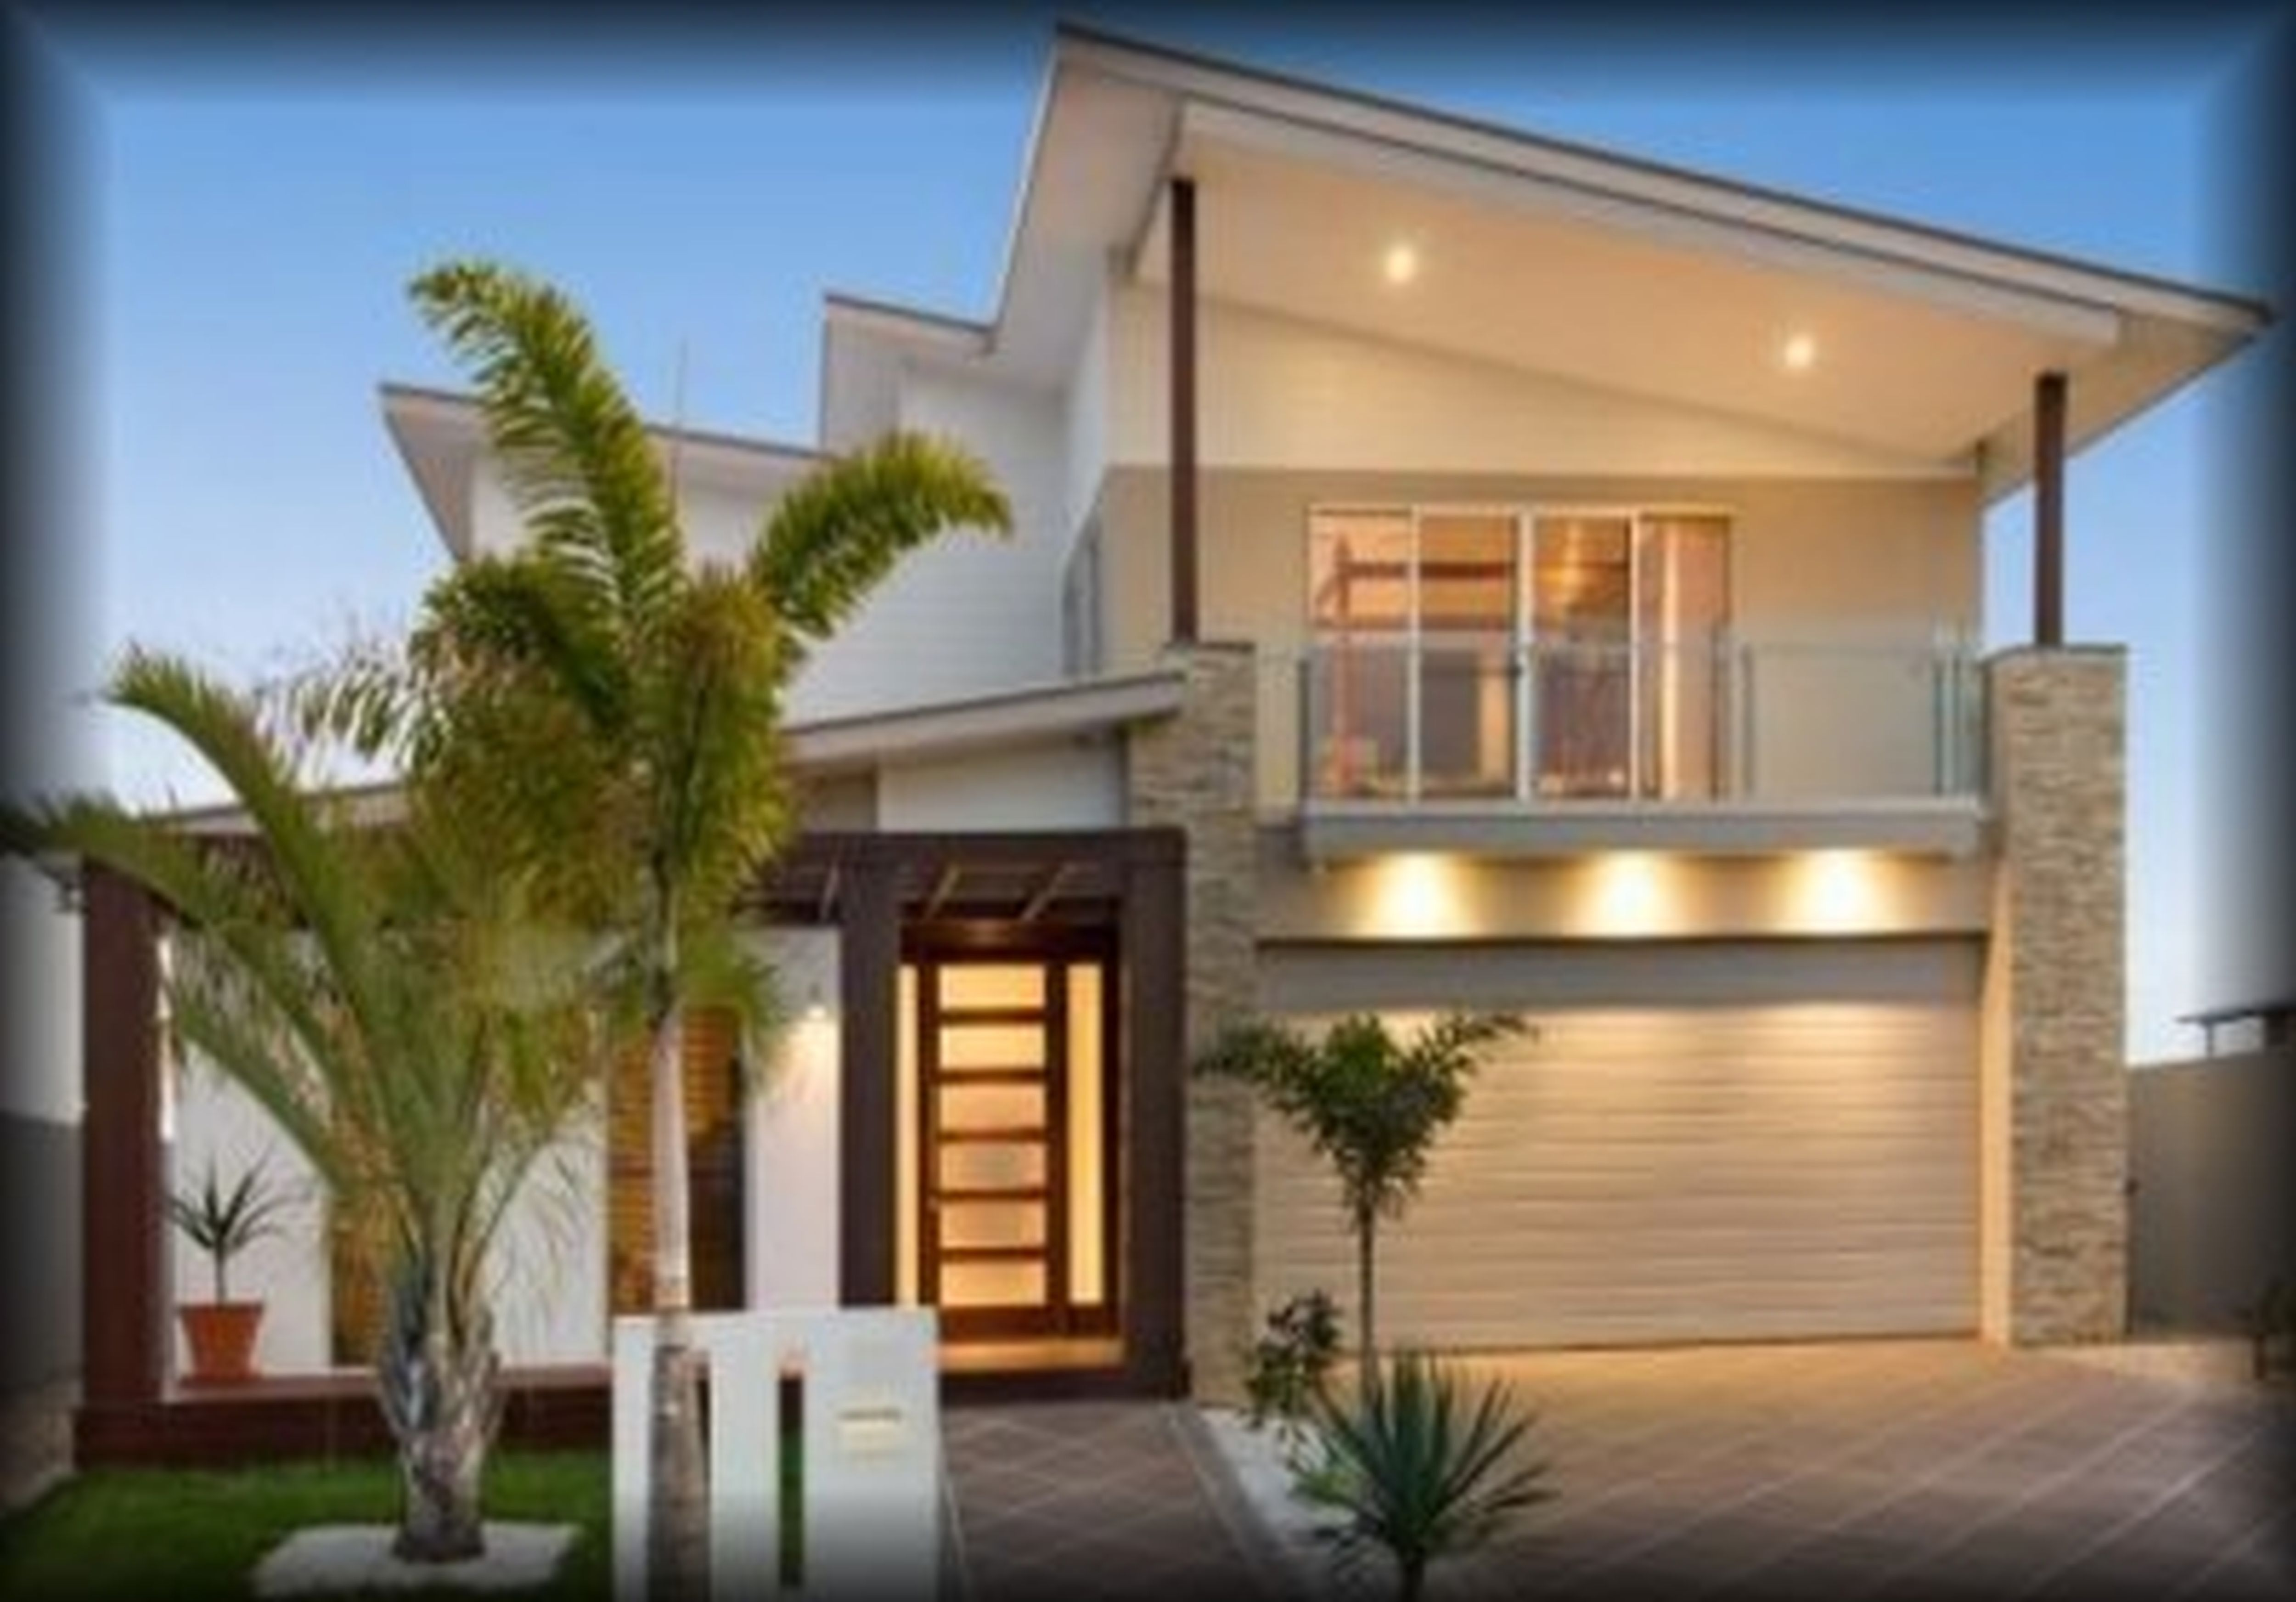 Small house design storey house designs and floor plans for Small modern house designs and floor plans